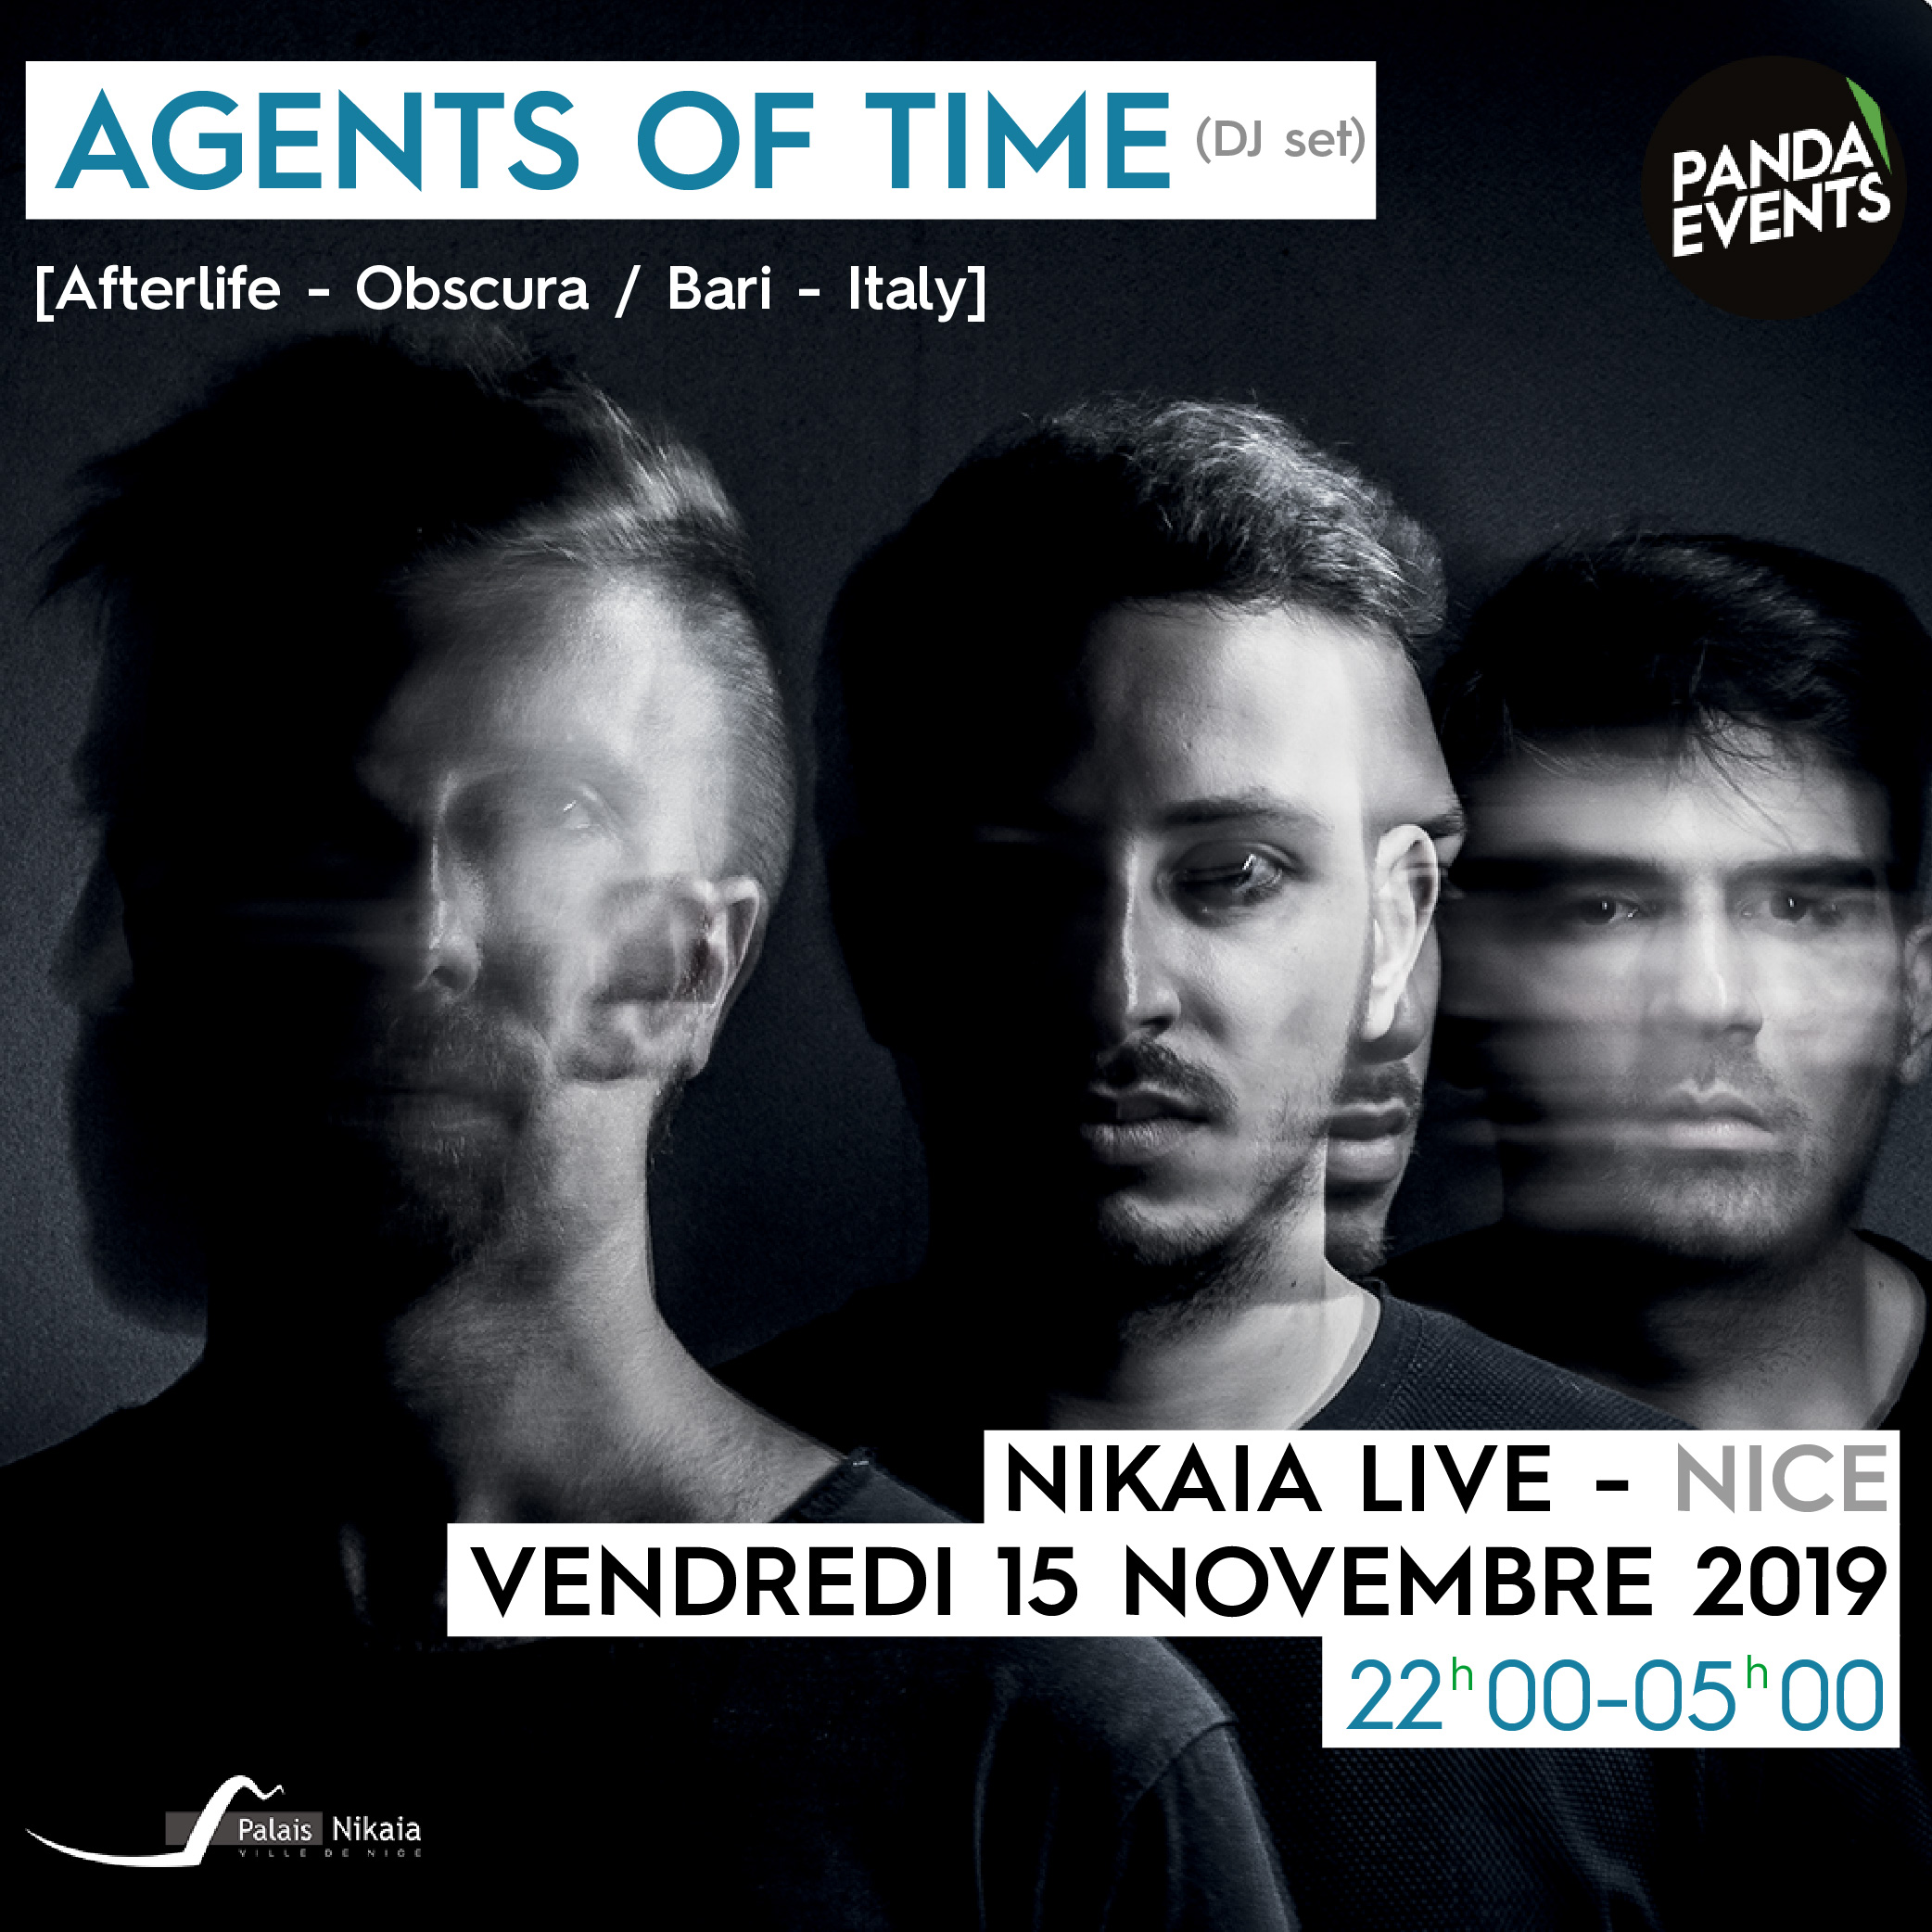 Agents Of Time (DJ set)